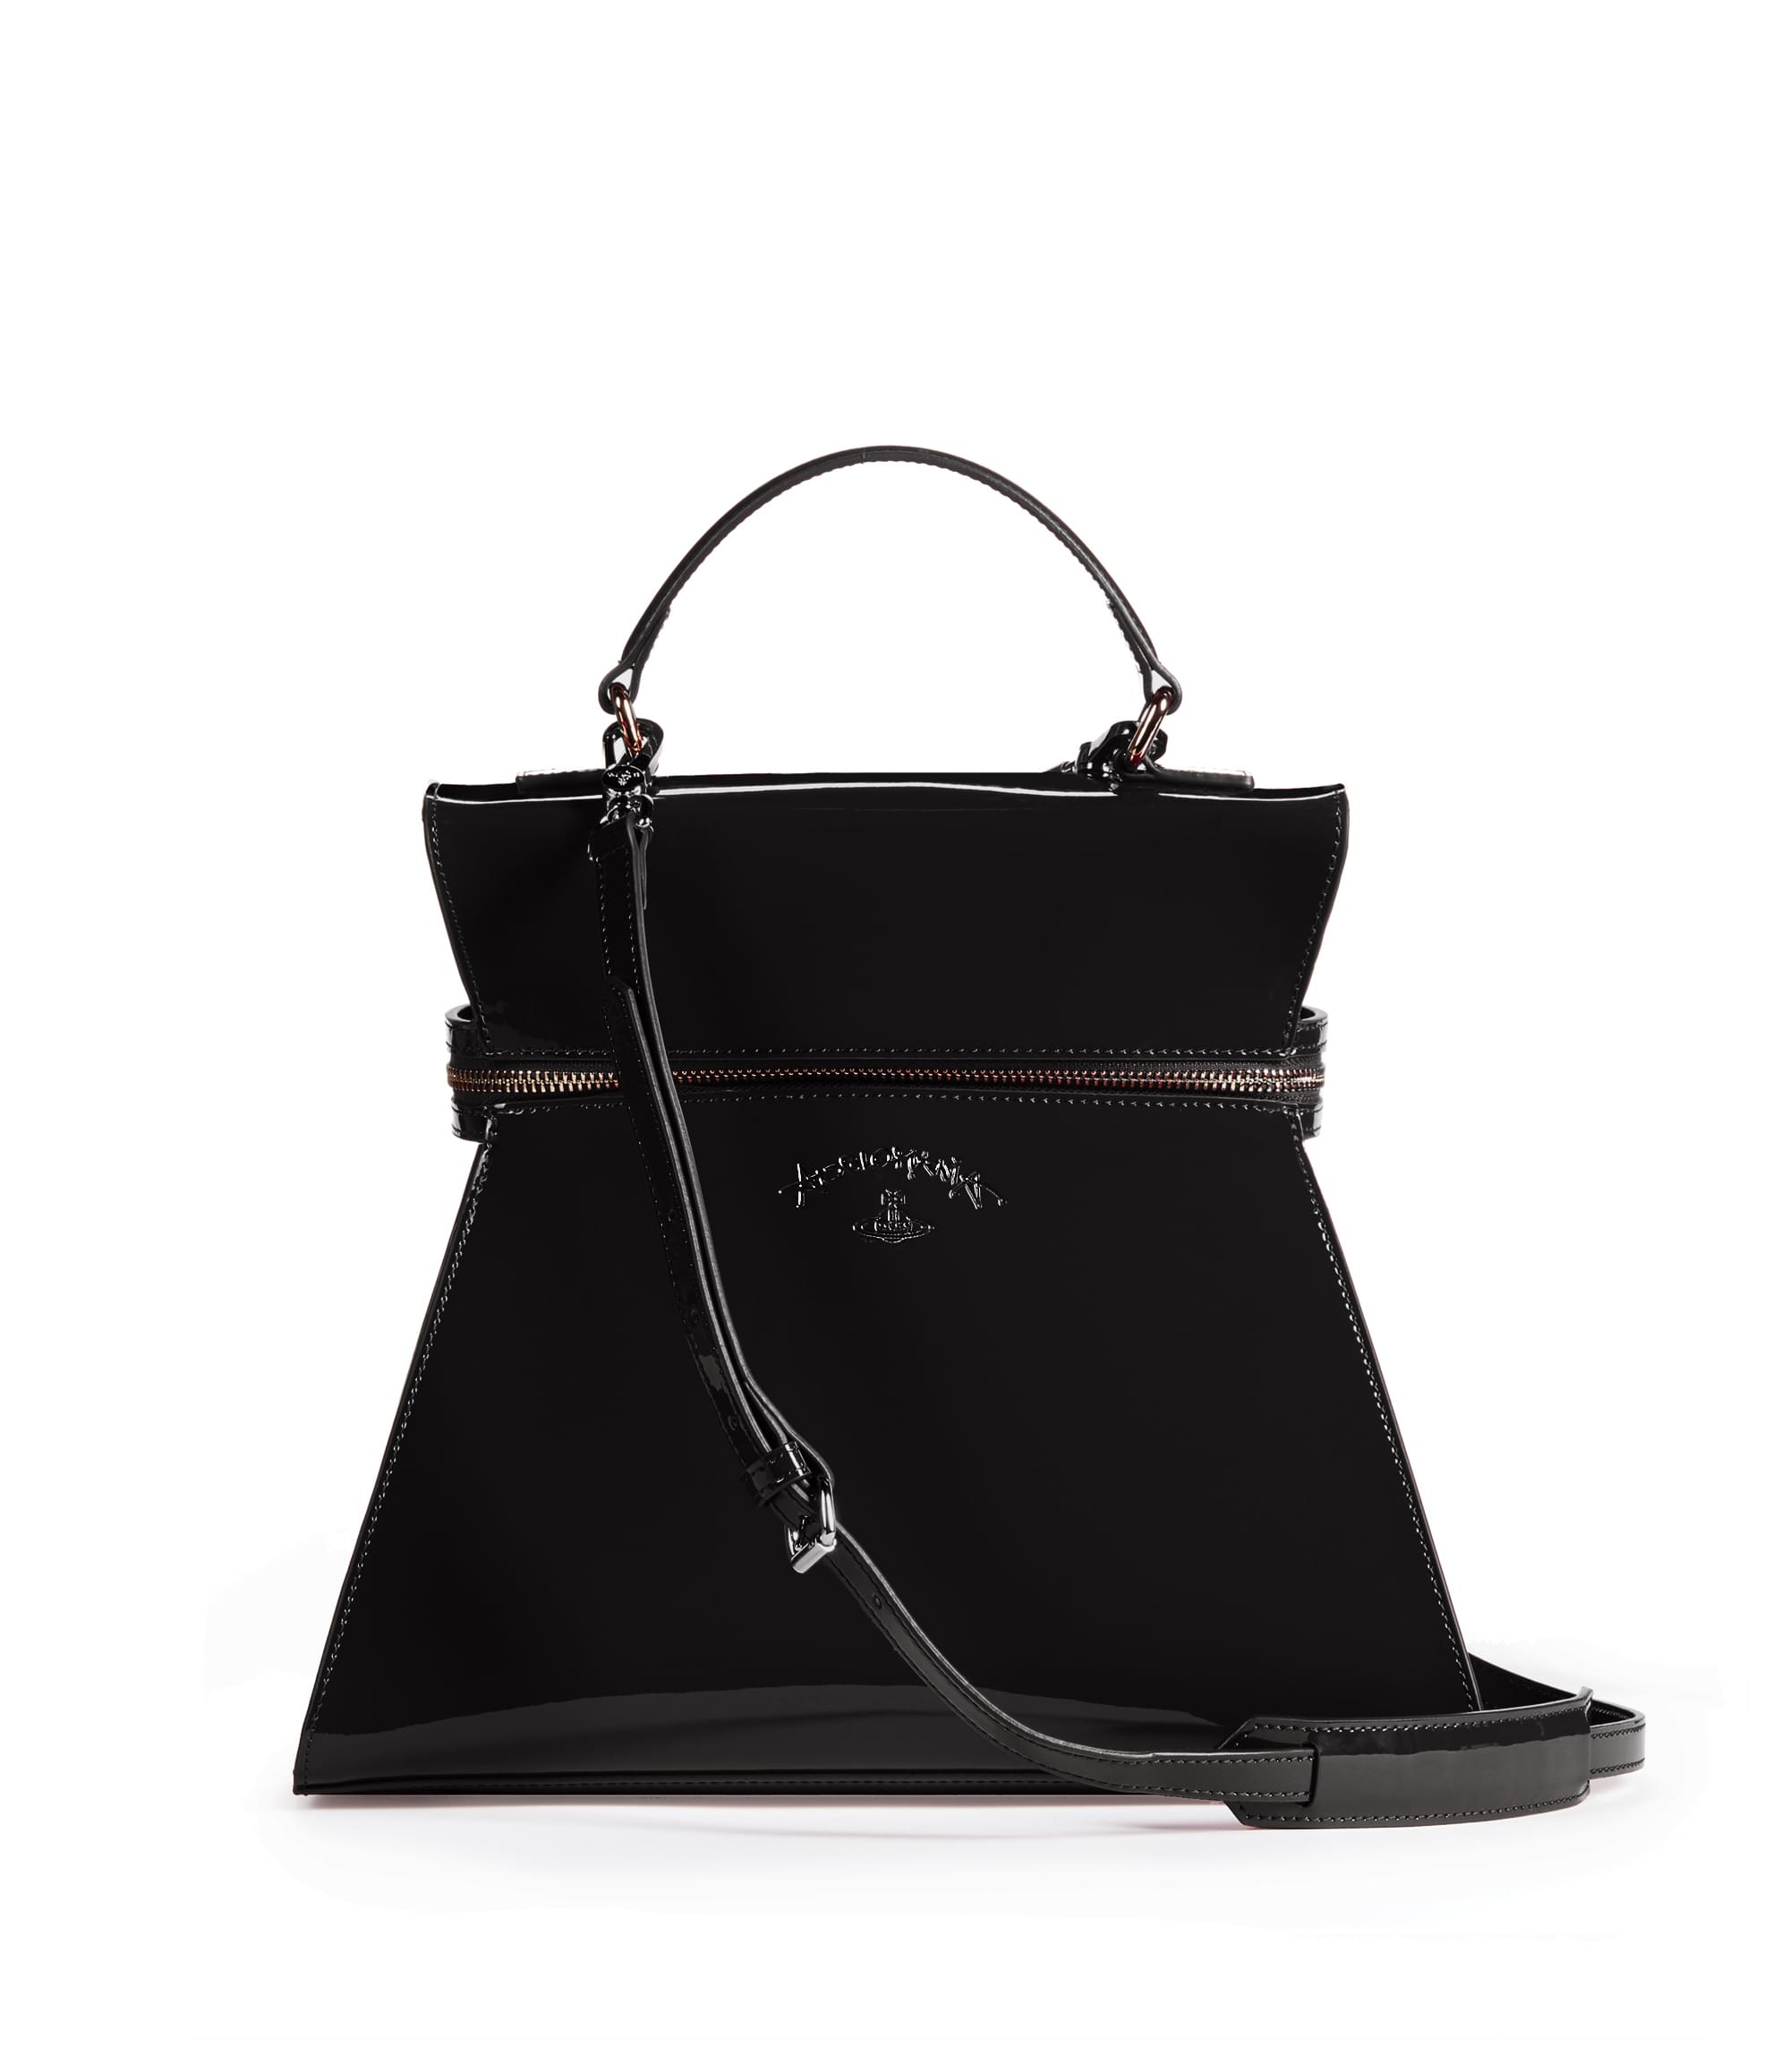 Vivienne Westwood Kelly Handbag 190044 Black